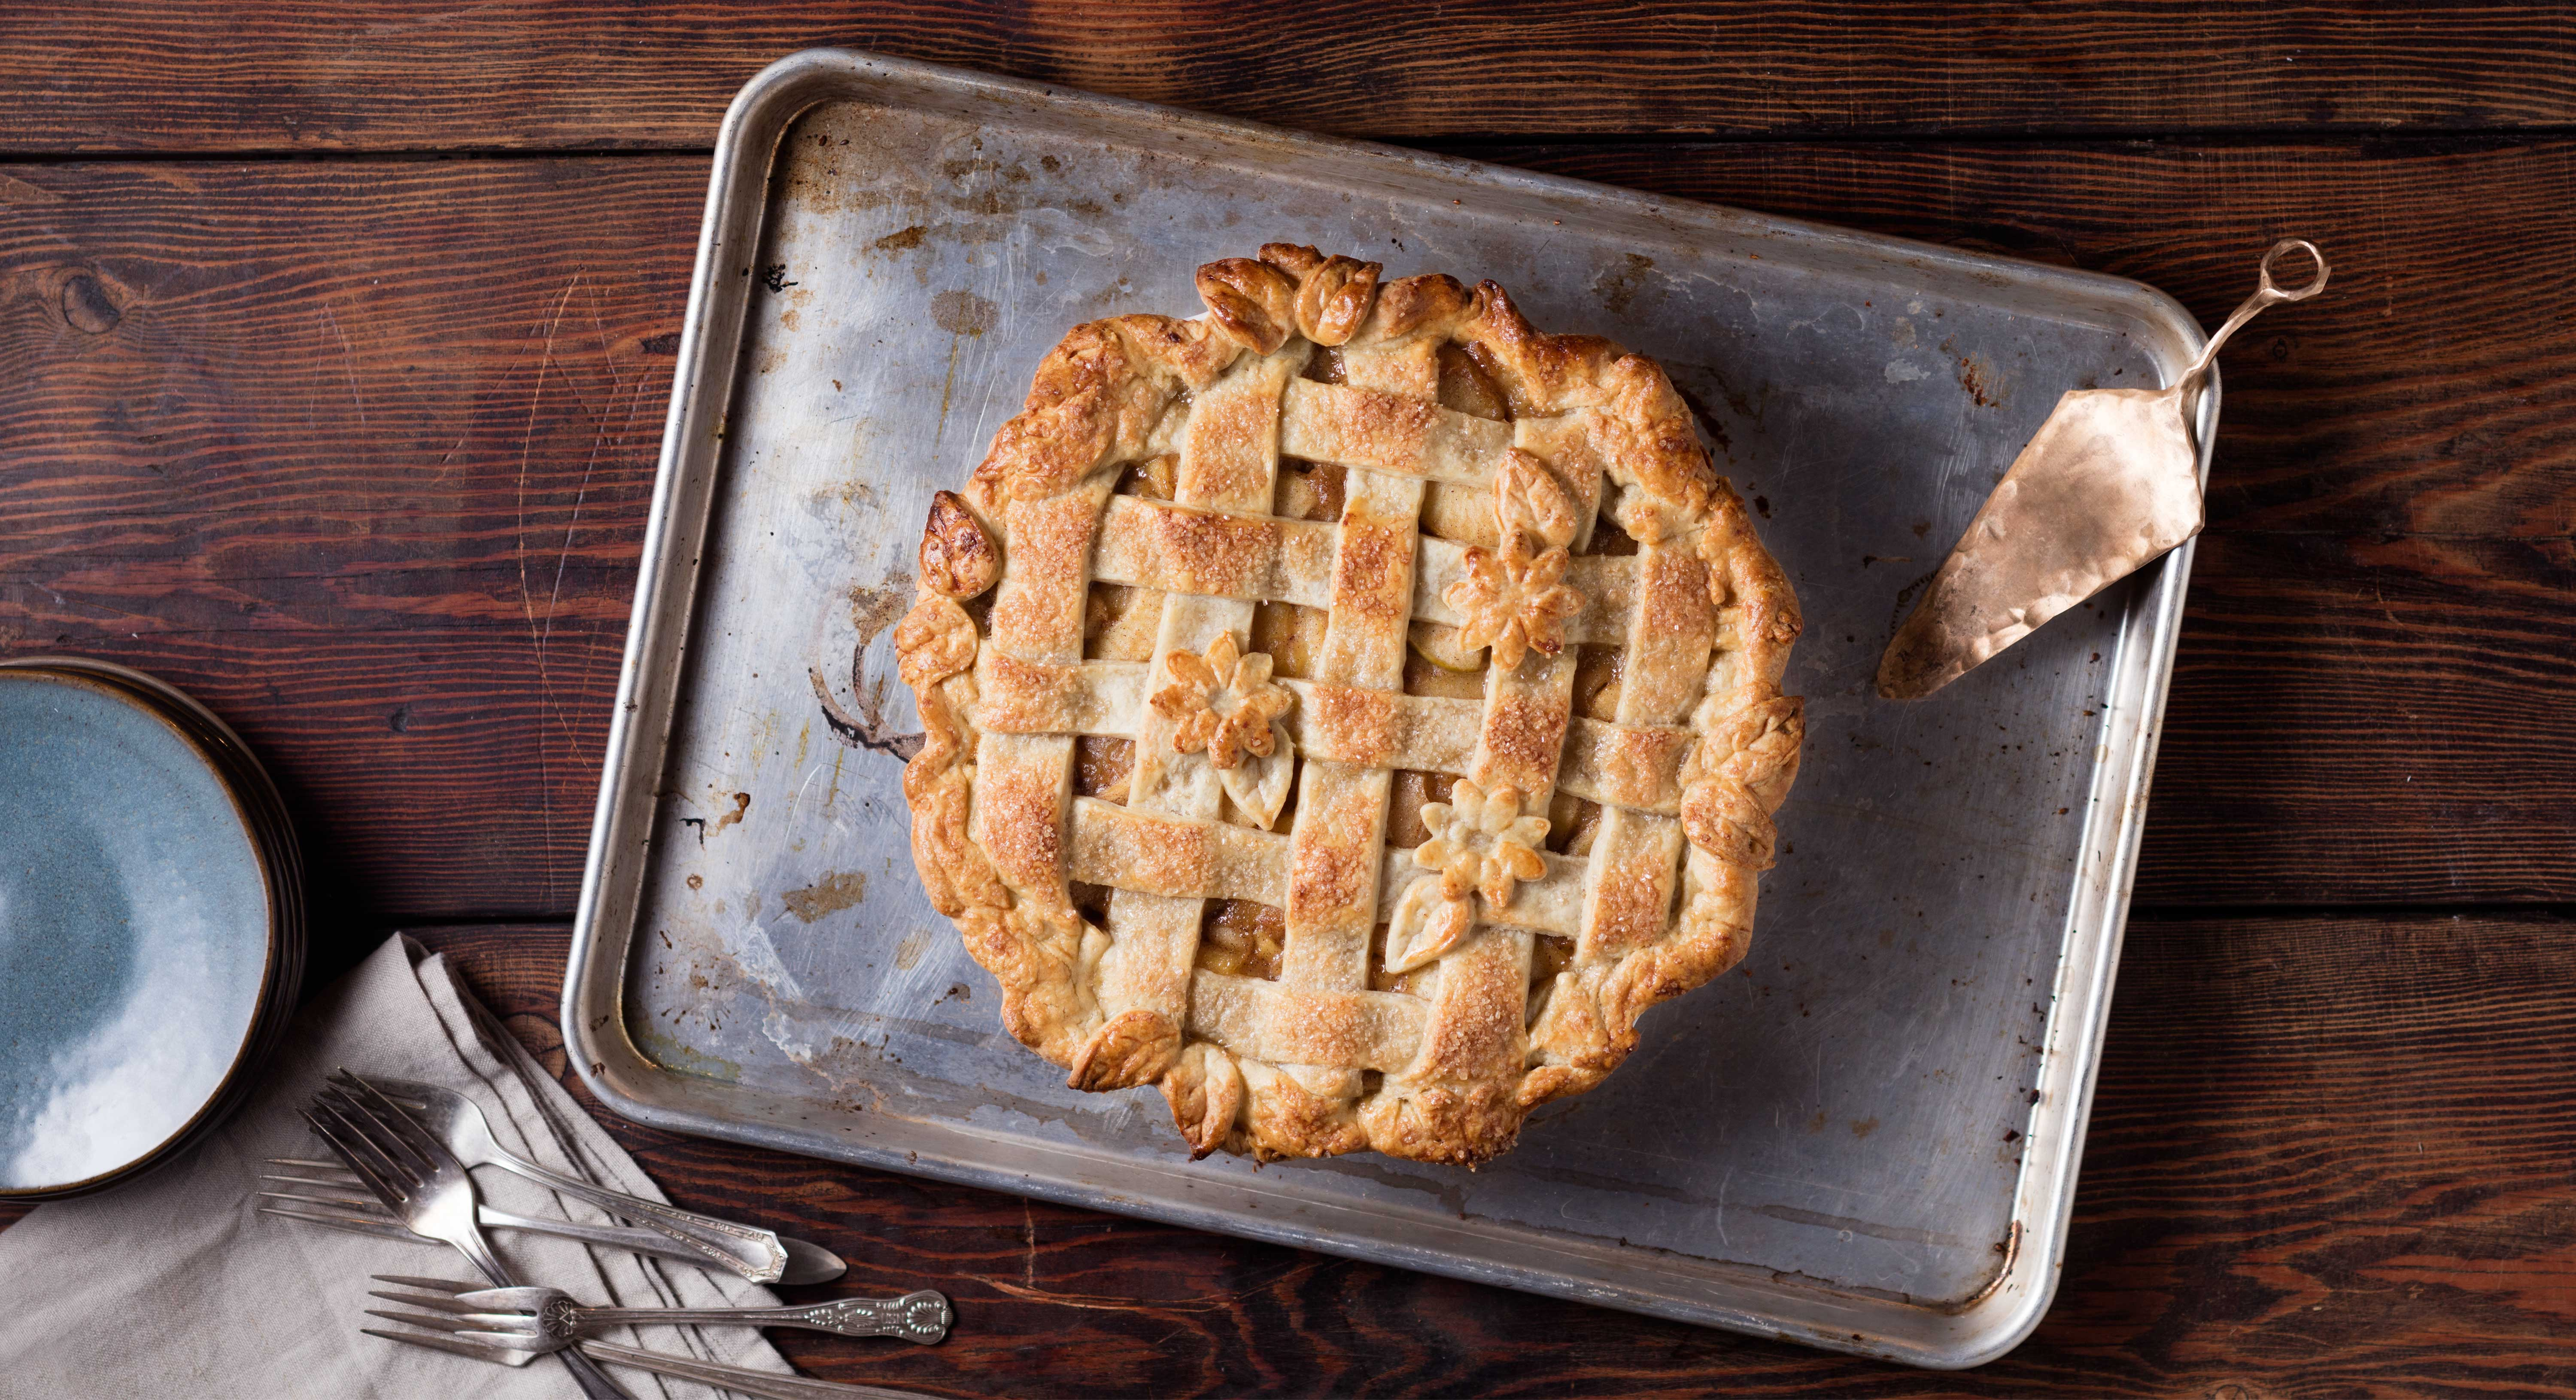 5 Apple Desserts to Make This Fall